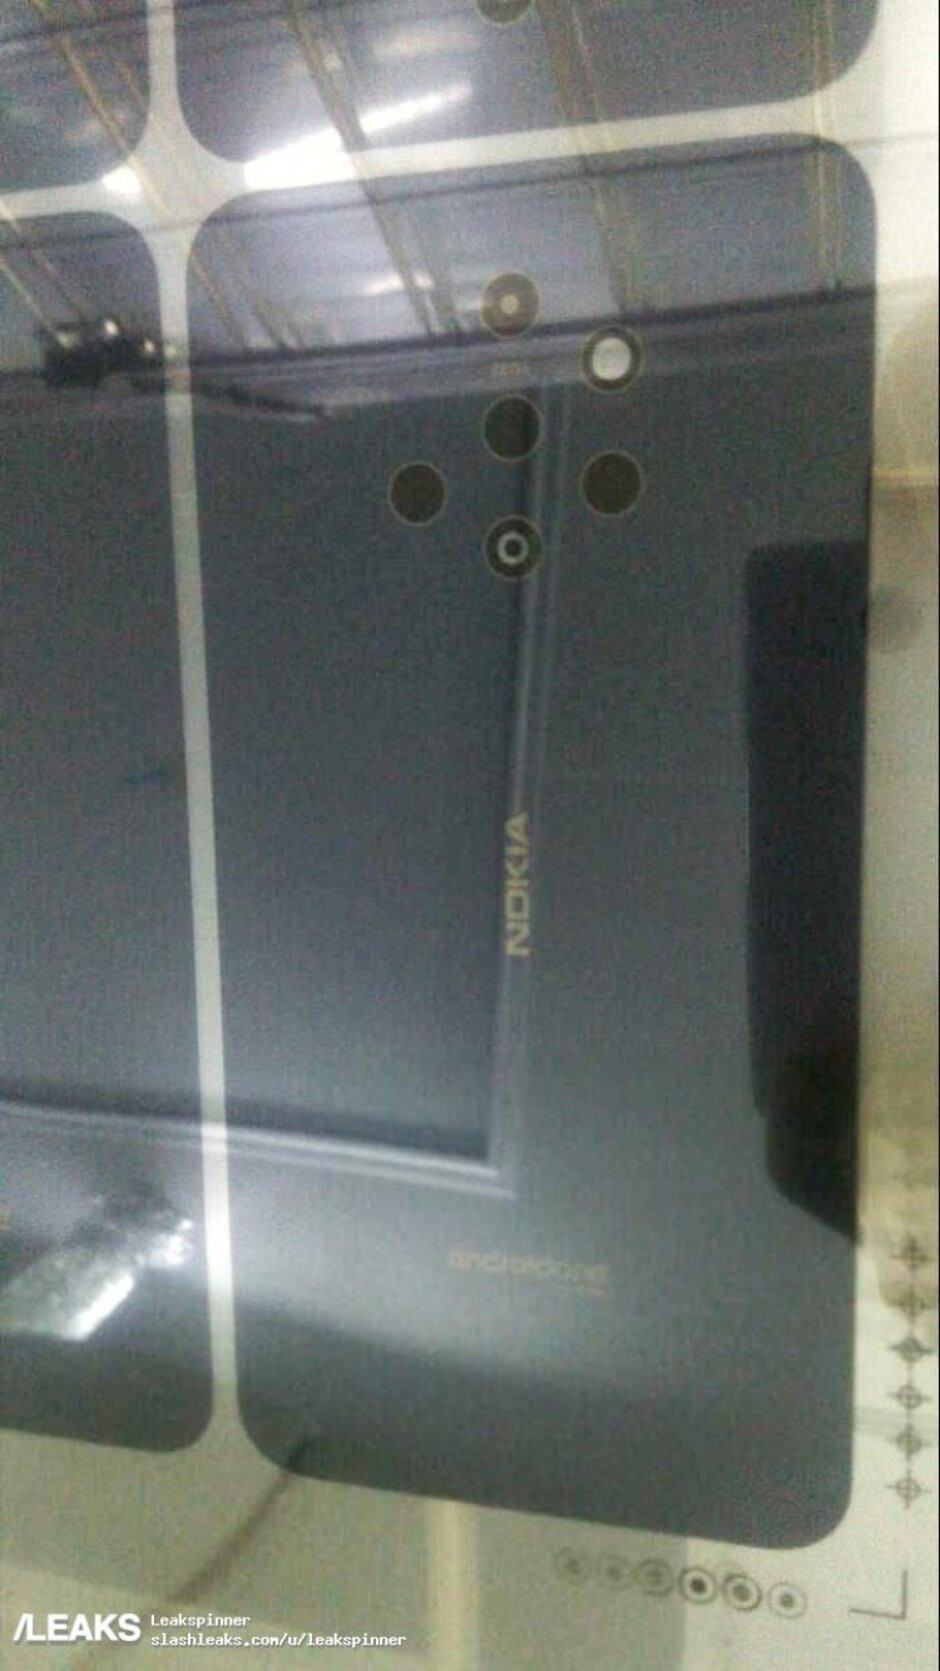 Possible Nokia 9 image leaks online revealing ridiculous camera setup